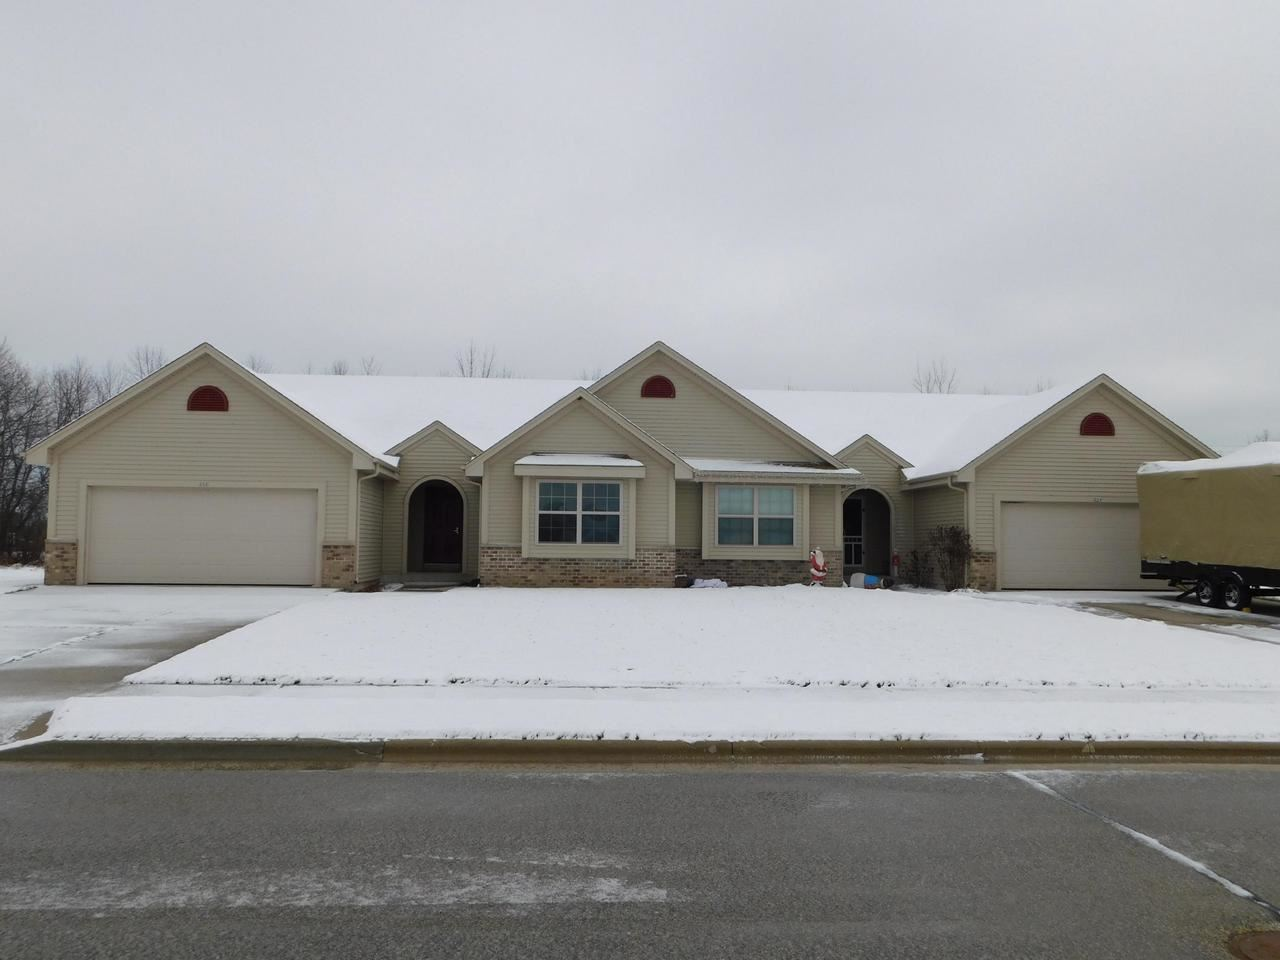 252 Wings Way #254, Belgium, WI 53004 - MLS#: 1669472